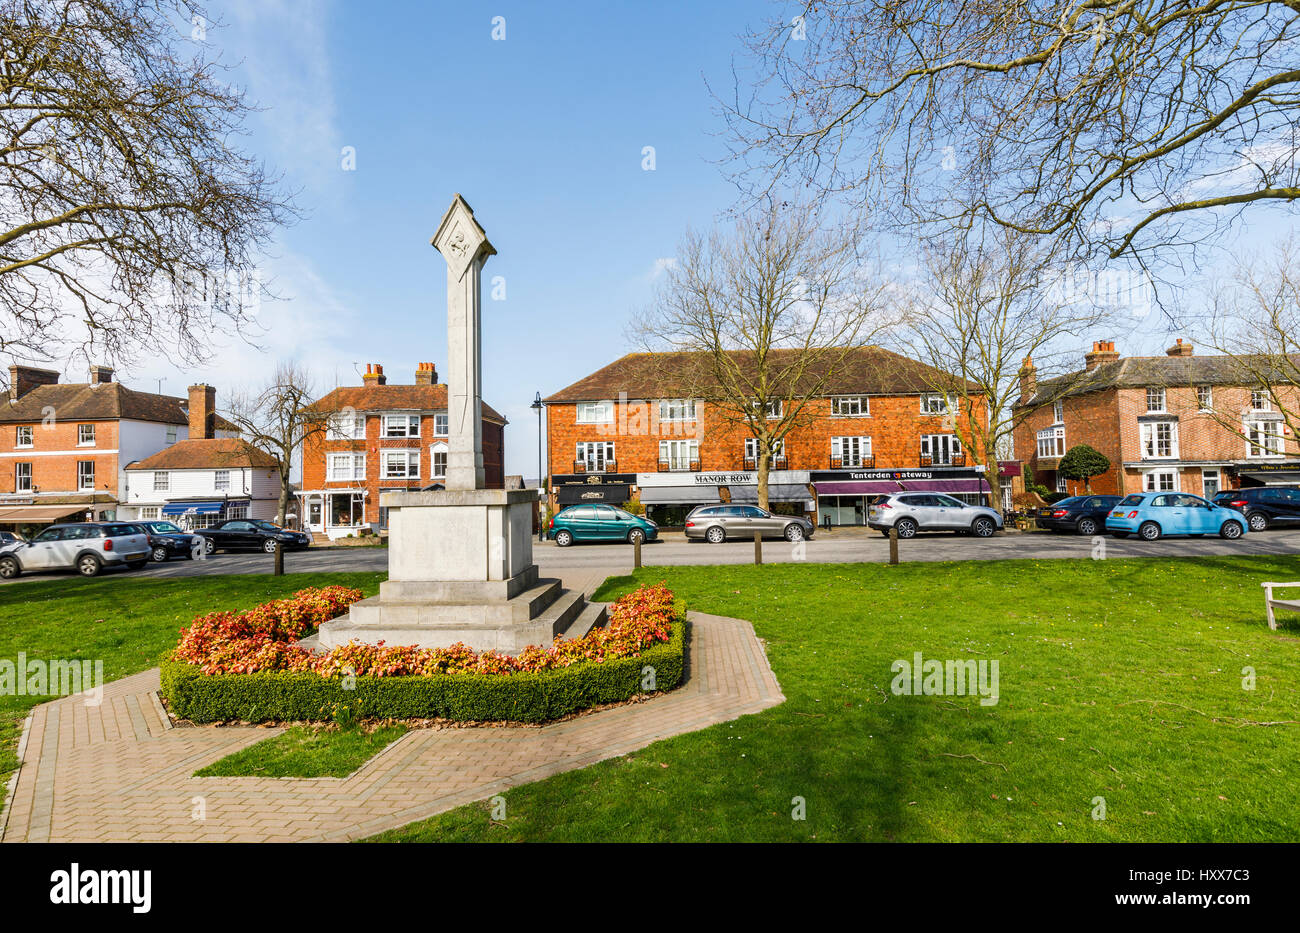 Traditional war memorial, High Street, Tenderden, Kent, south-east England, UK on a sunny spring day with blue sky - Stock Image